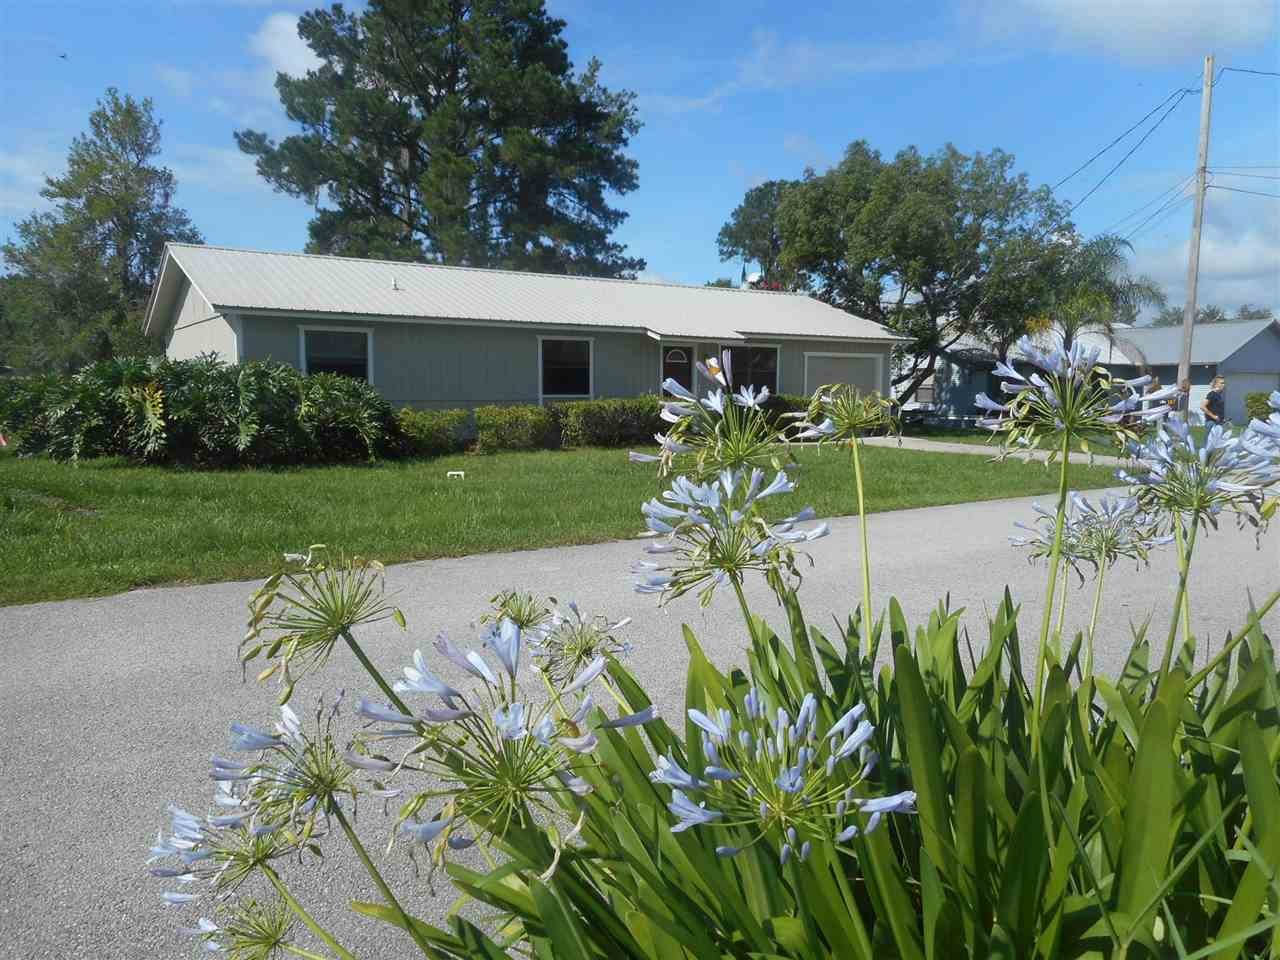 """Love the St. John's River? This is the very unique St. John's River canal front """"Palm Port"""" East Palatka home you have been waiting for! Freshly painted exterior - done! Now it's time for the new owners to turn the inside into your dream waterfront spot. Every day fishing and boating or the get-away fishing retreat."""